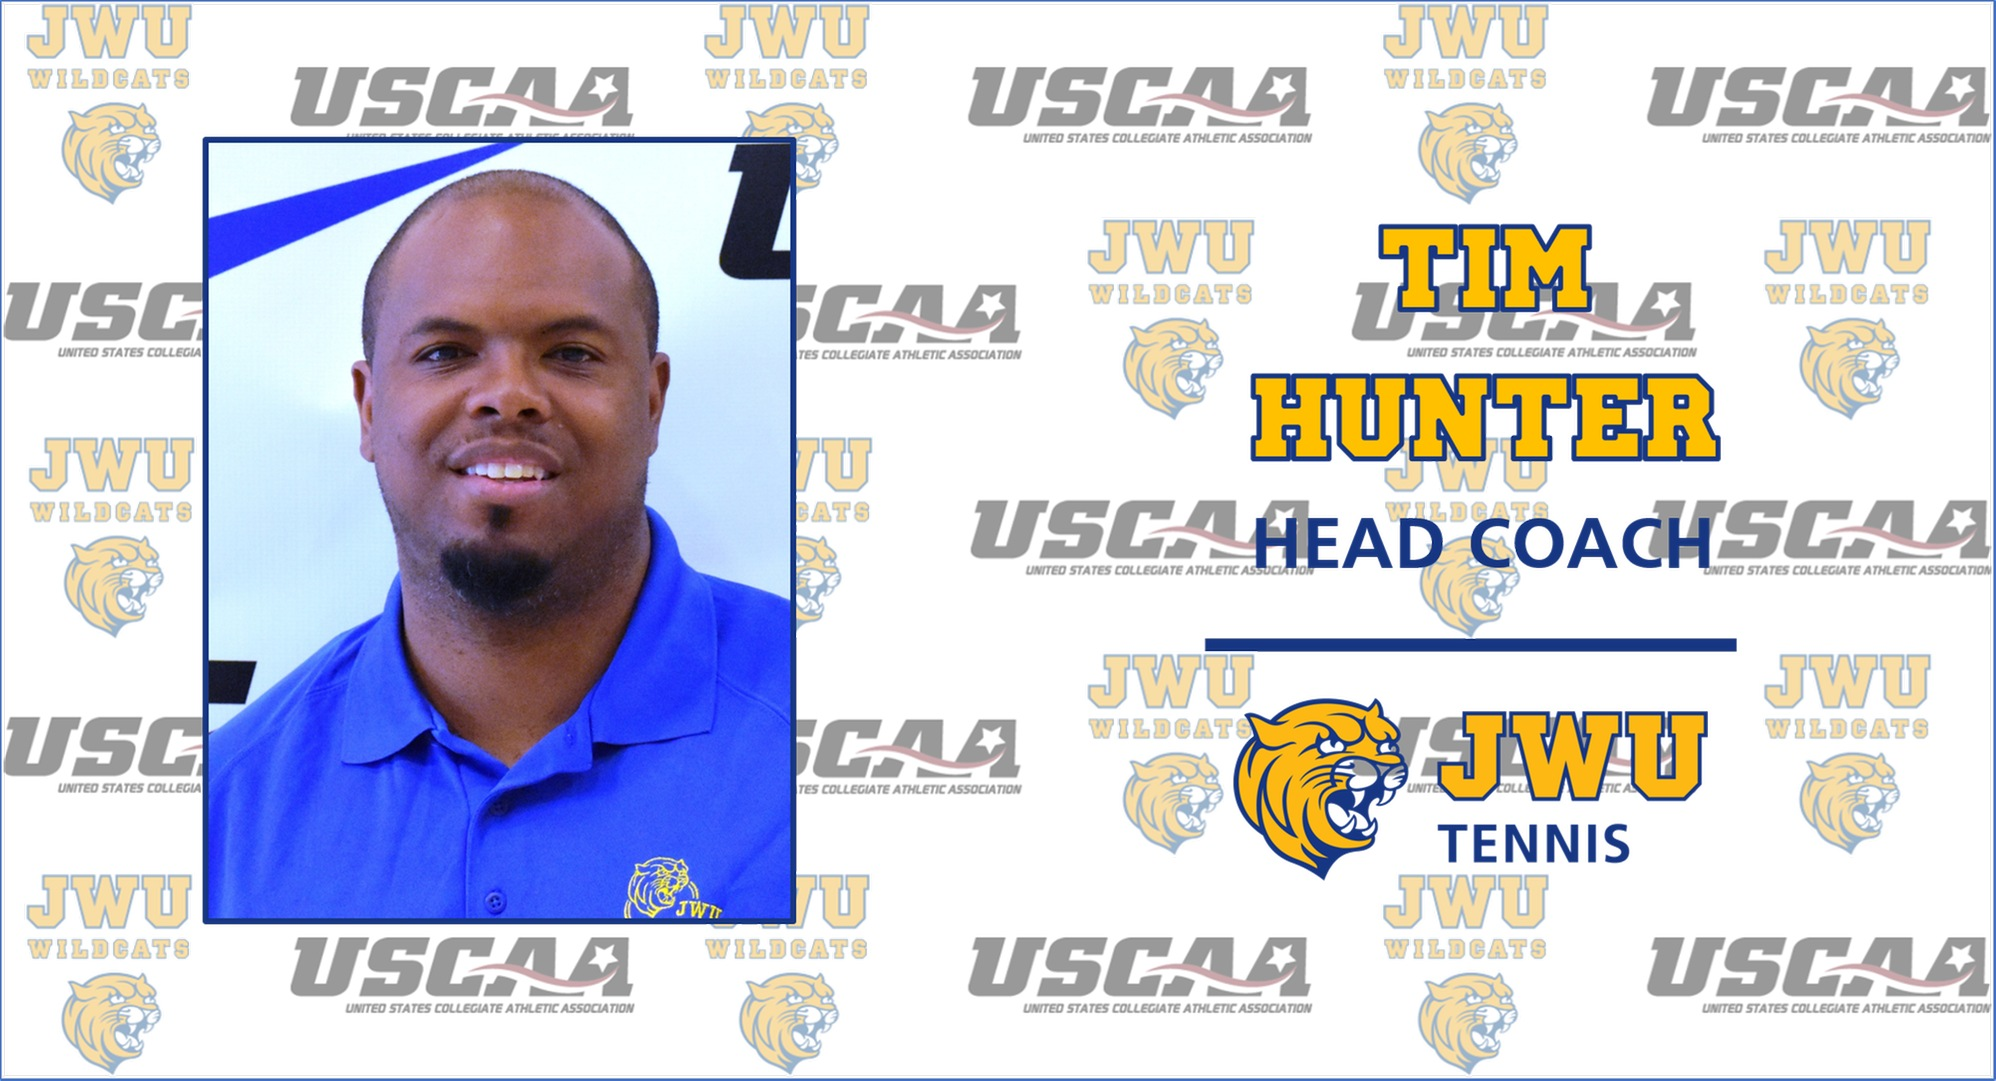 Tim Hunter Tabbed As JWU Men's & Women's Tennis Head Coach